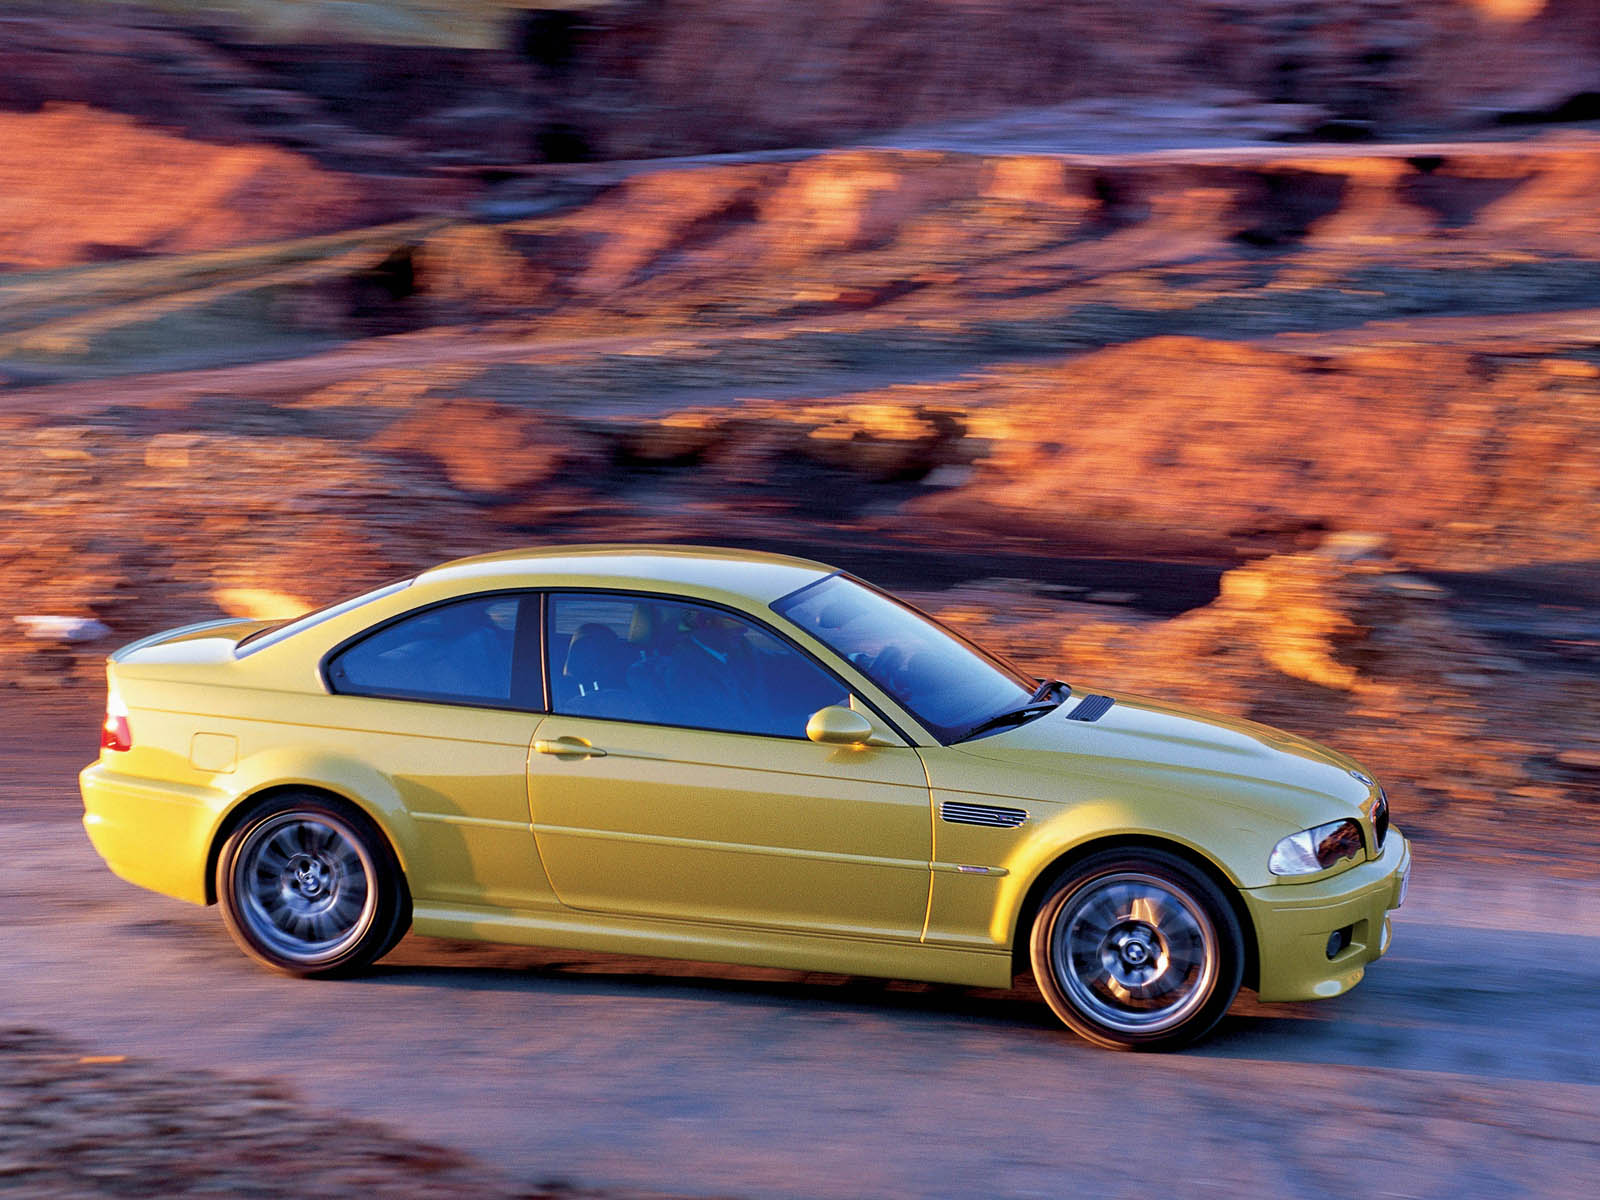 bmw m3 e46 picture 10268 bmw photo gallery. Black Bedroom Furniture Sets. Home Design Ideas